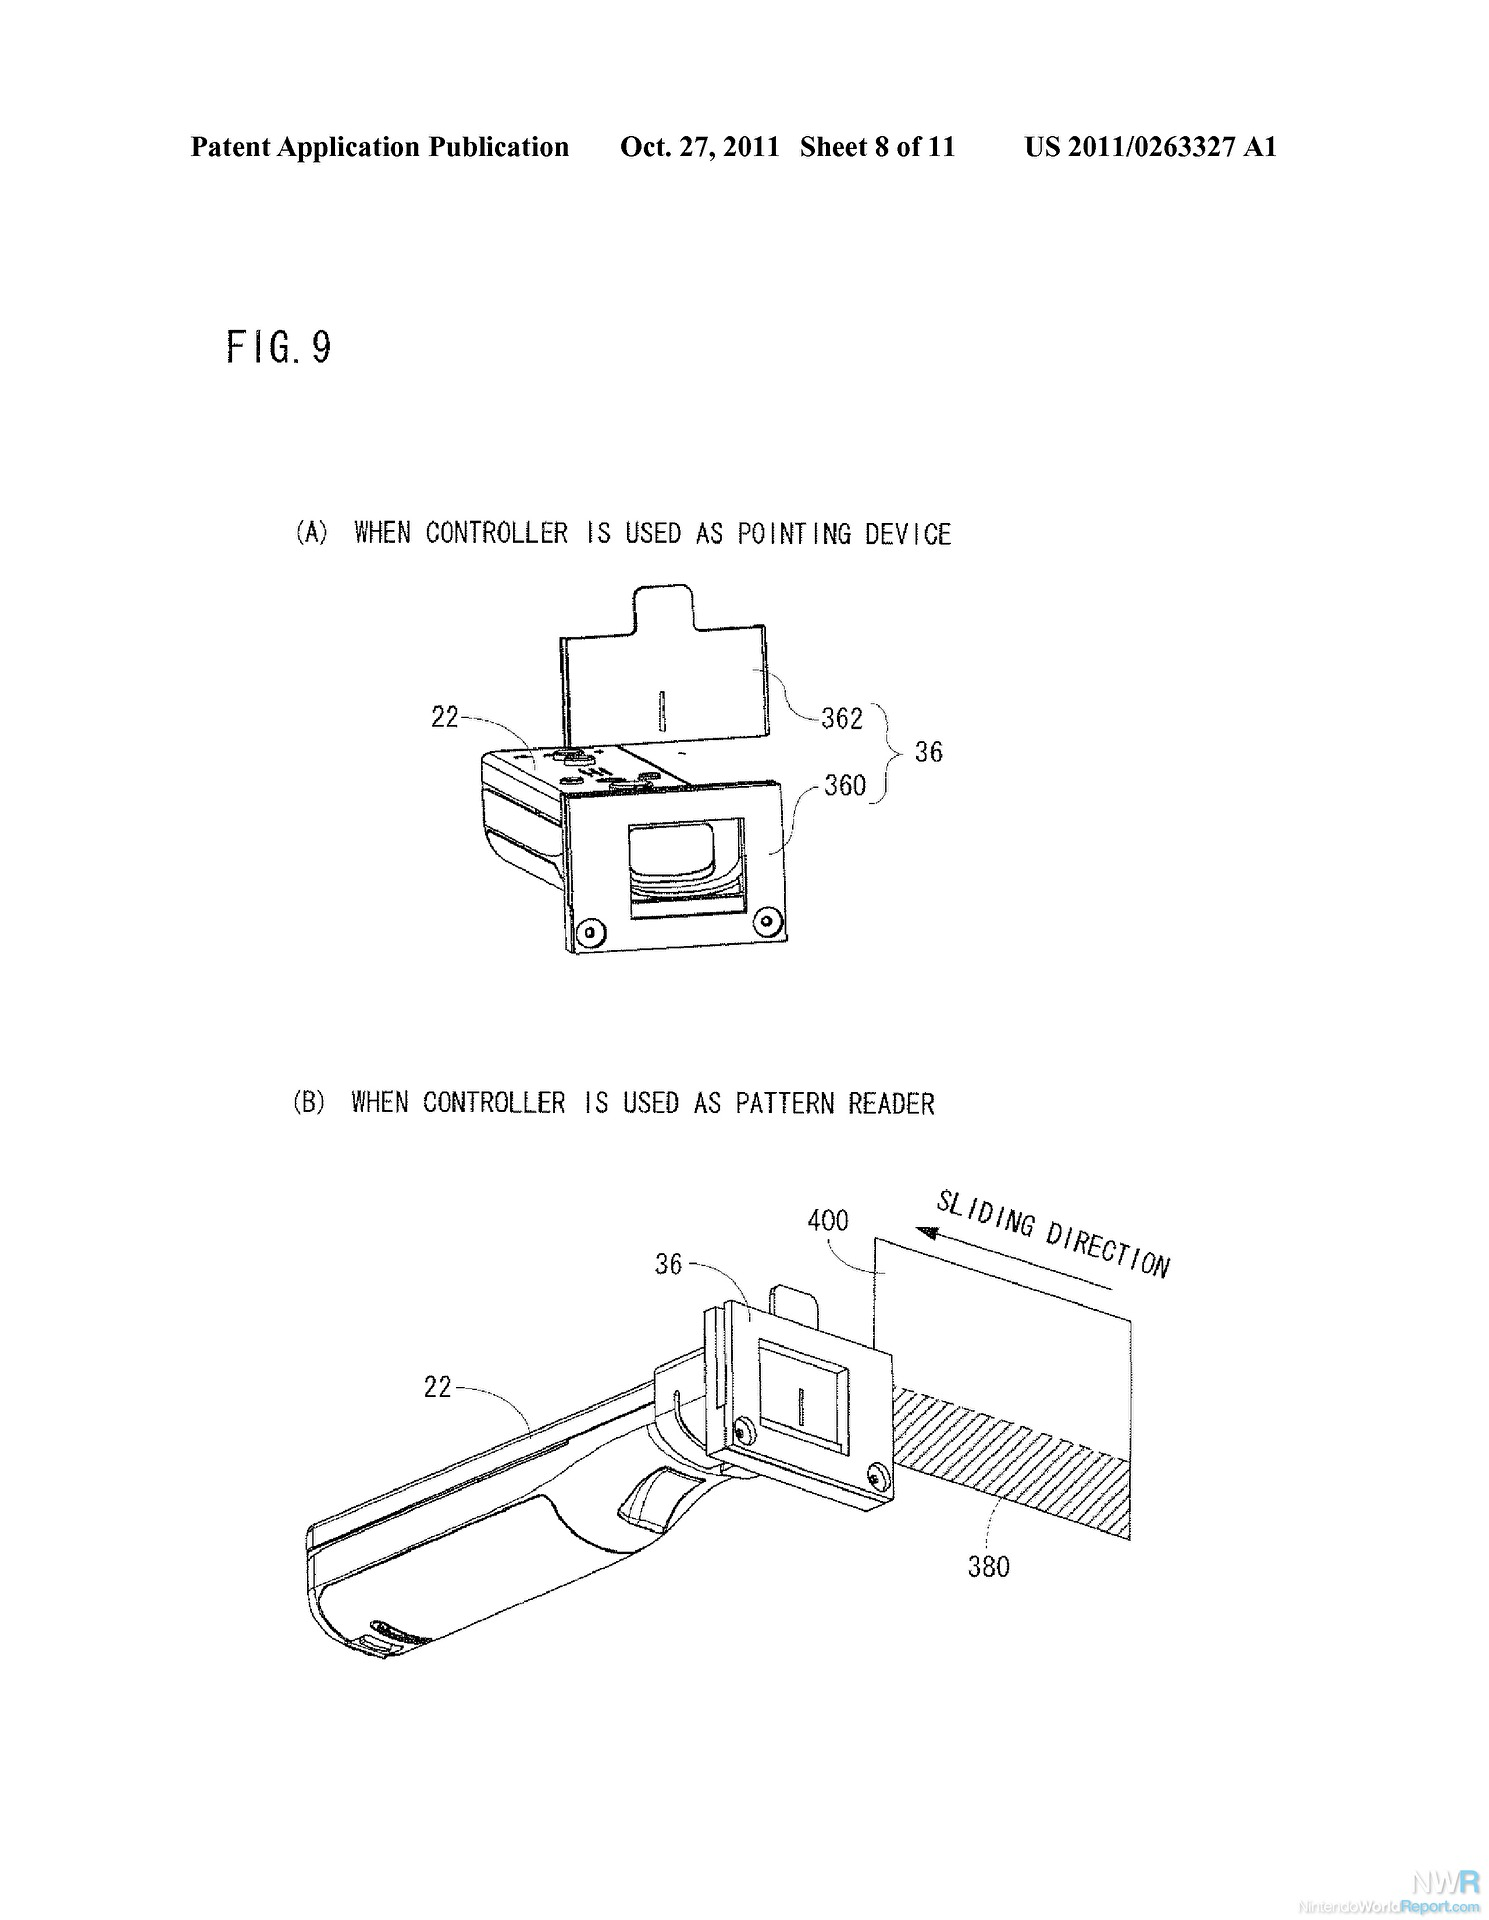 Nintendo Files for Wii Remote Infrared Add-on Patents